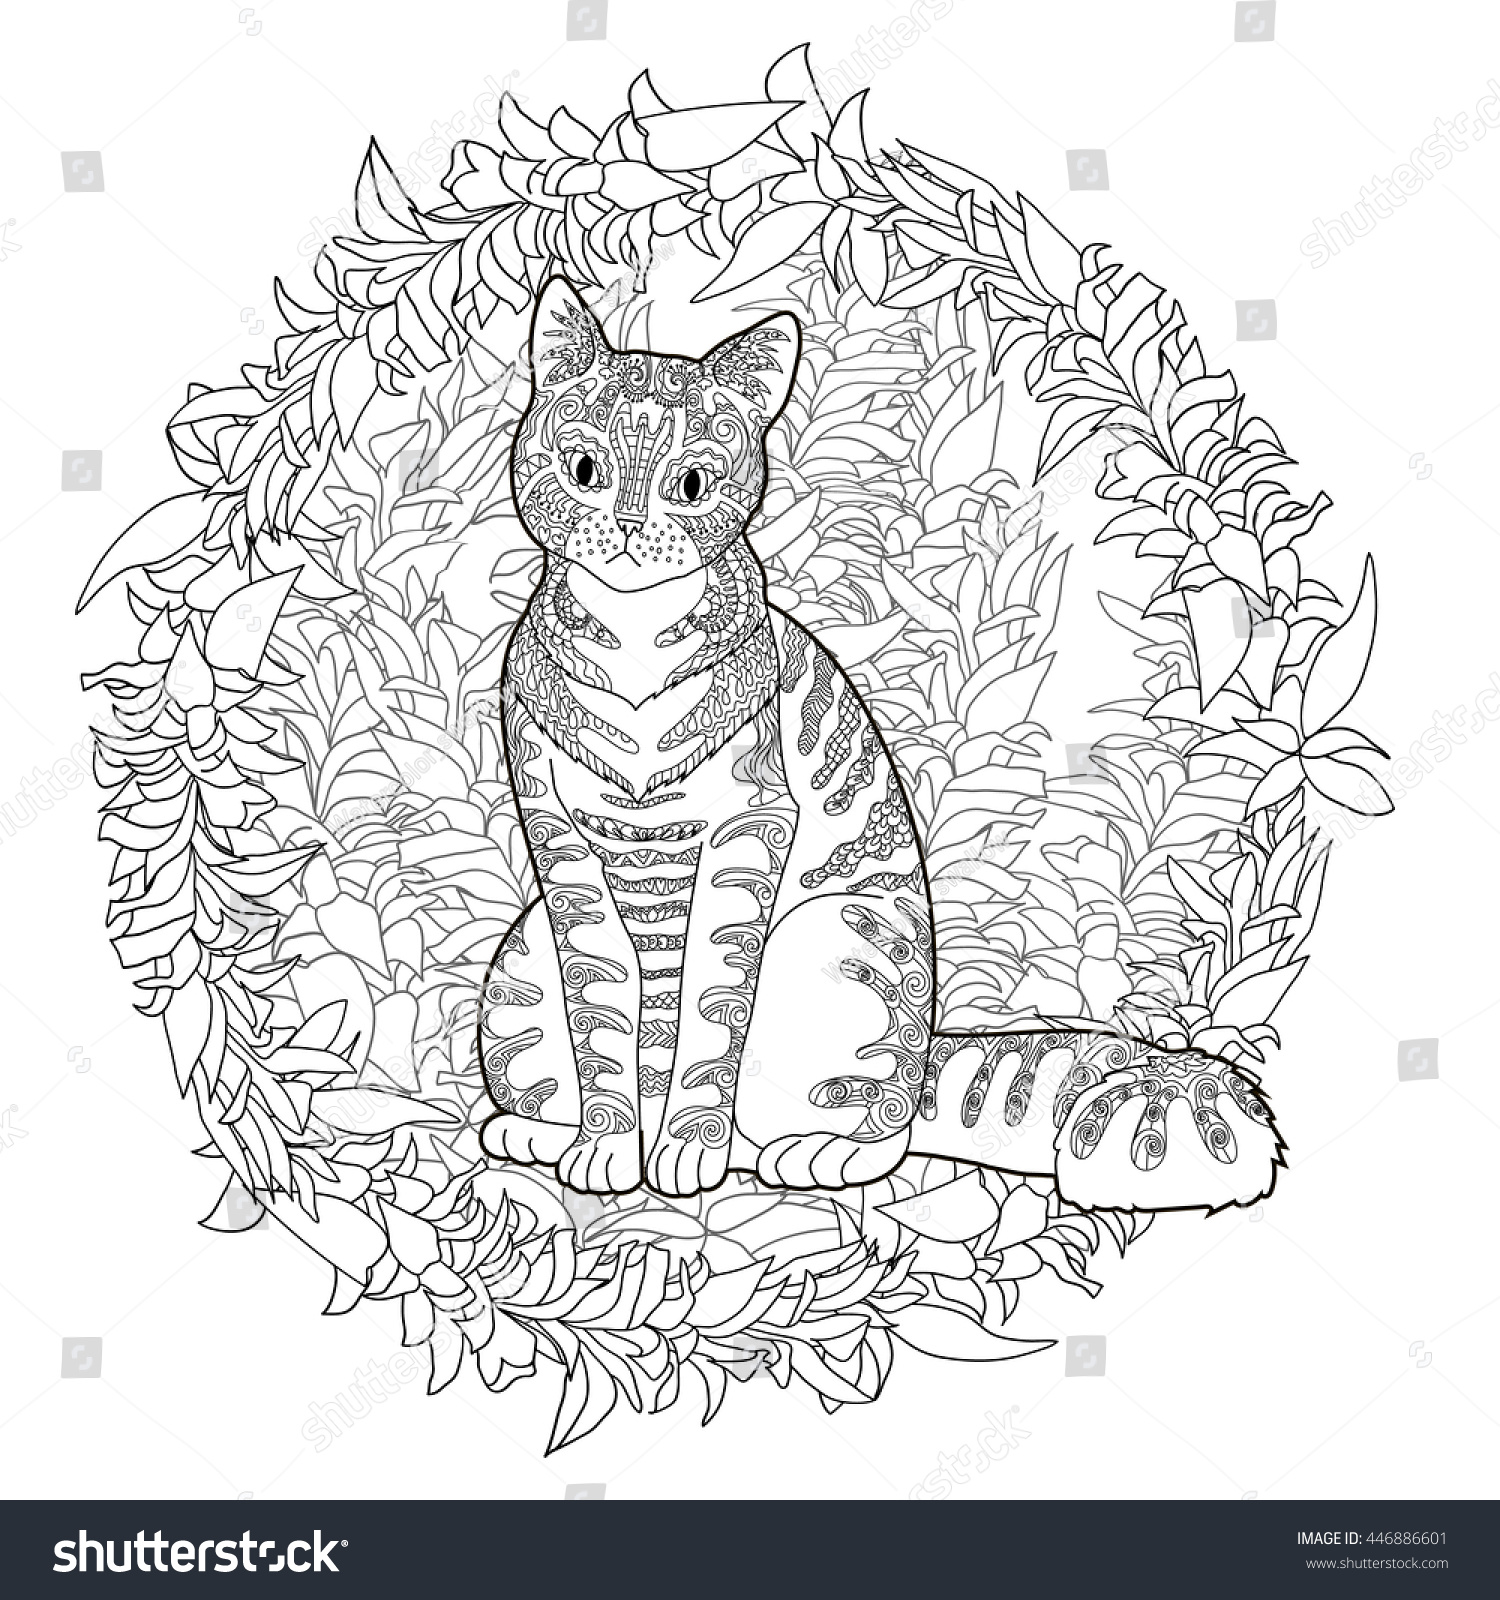 Zen cat coloring page - High Detail Patterned Cat In Zentangle Style Adult Coloring Page For Anti Stress Art Therapy